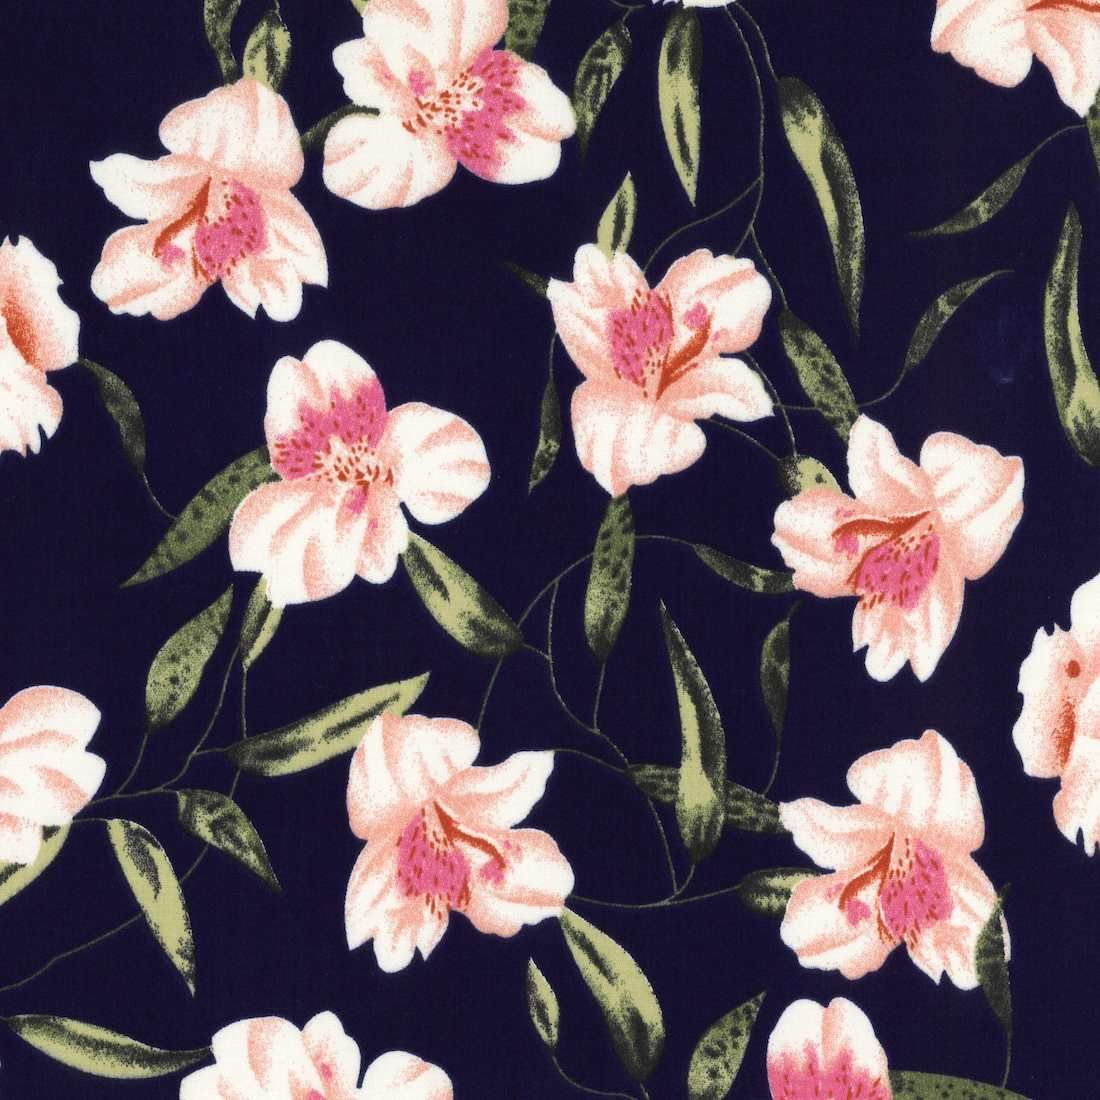 Stretch Cotton Fabric - Lilies On Navy